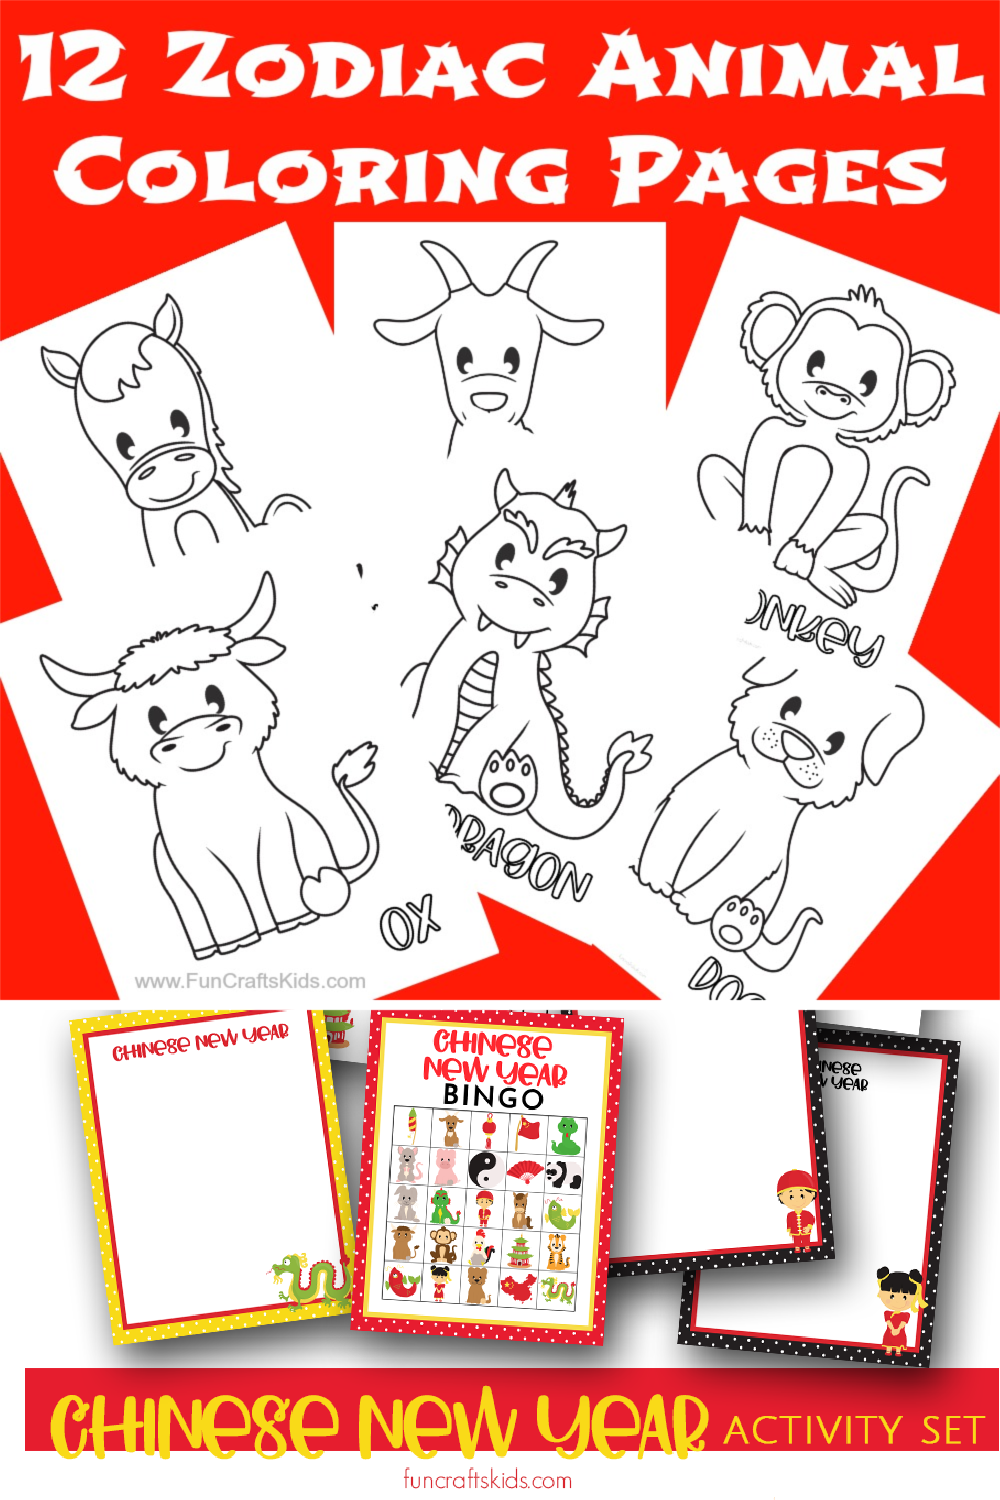 12 Free Printable Chinese Zodiac Coloring Pages Fun Crafts Kids